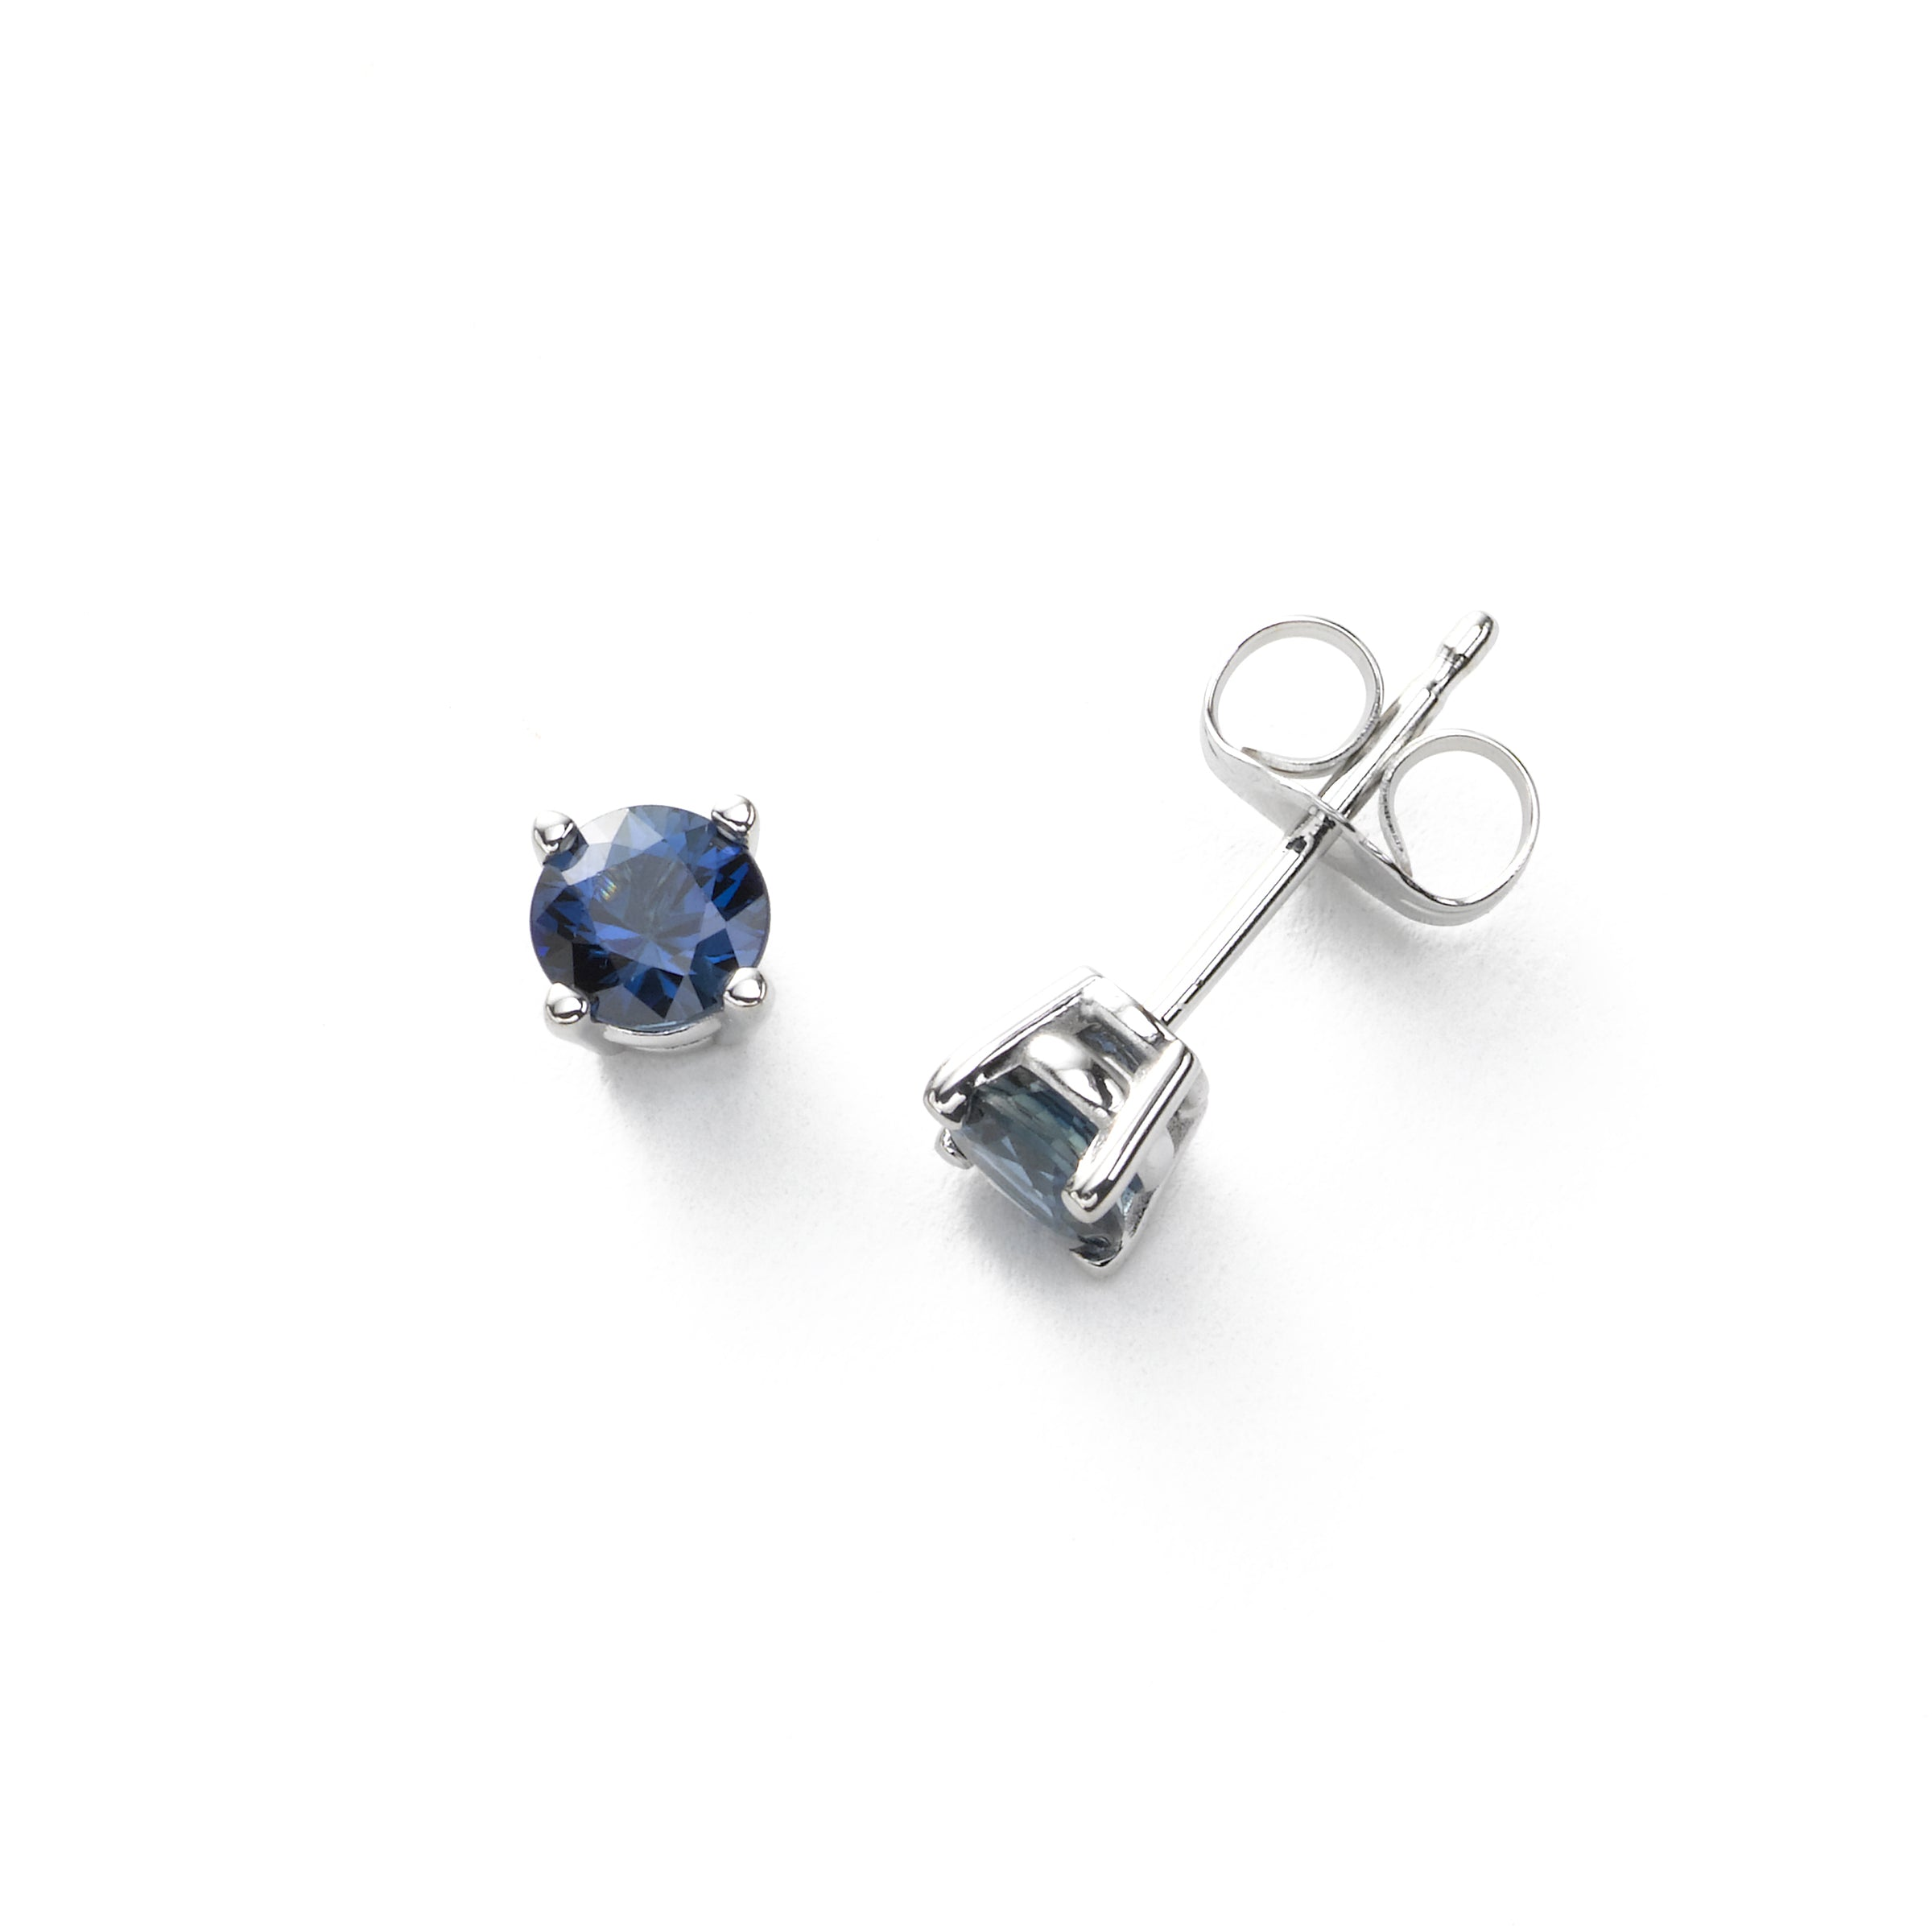 Fine Blue Sapphire Stud Earrings, 4.5 MM, 14K White Gold